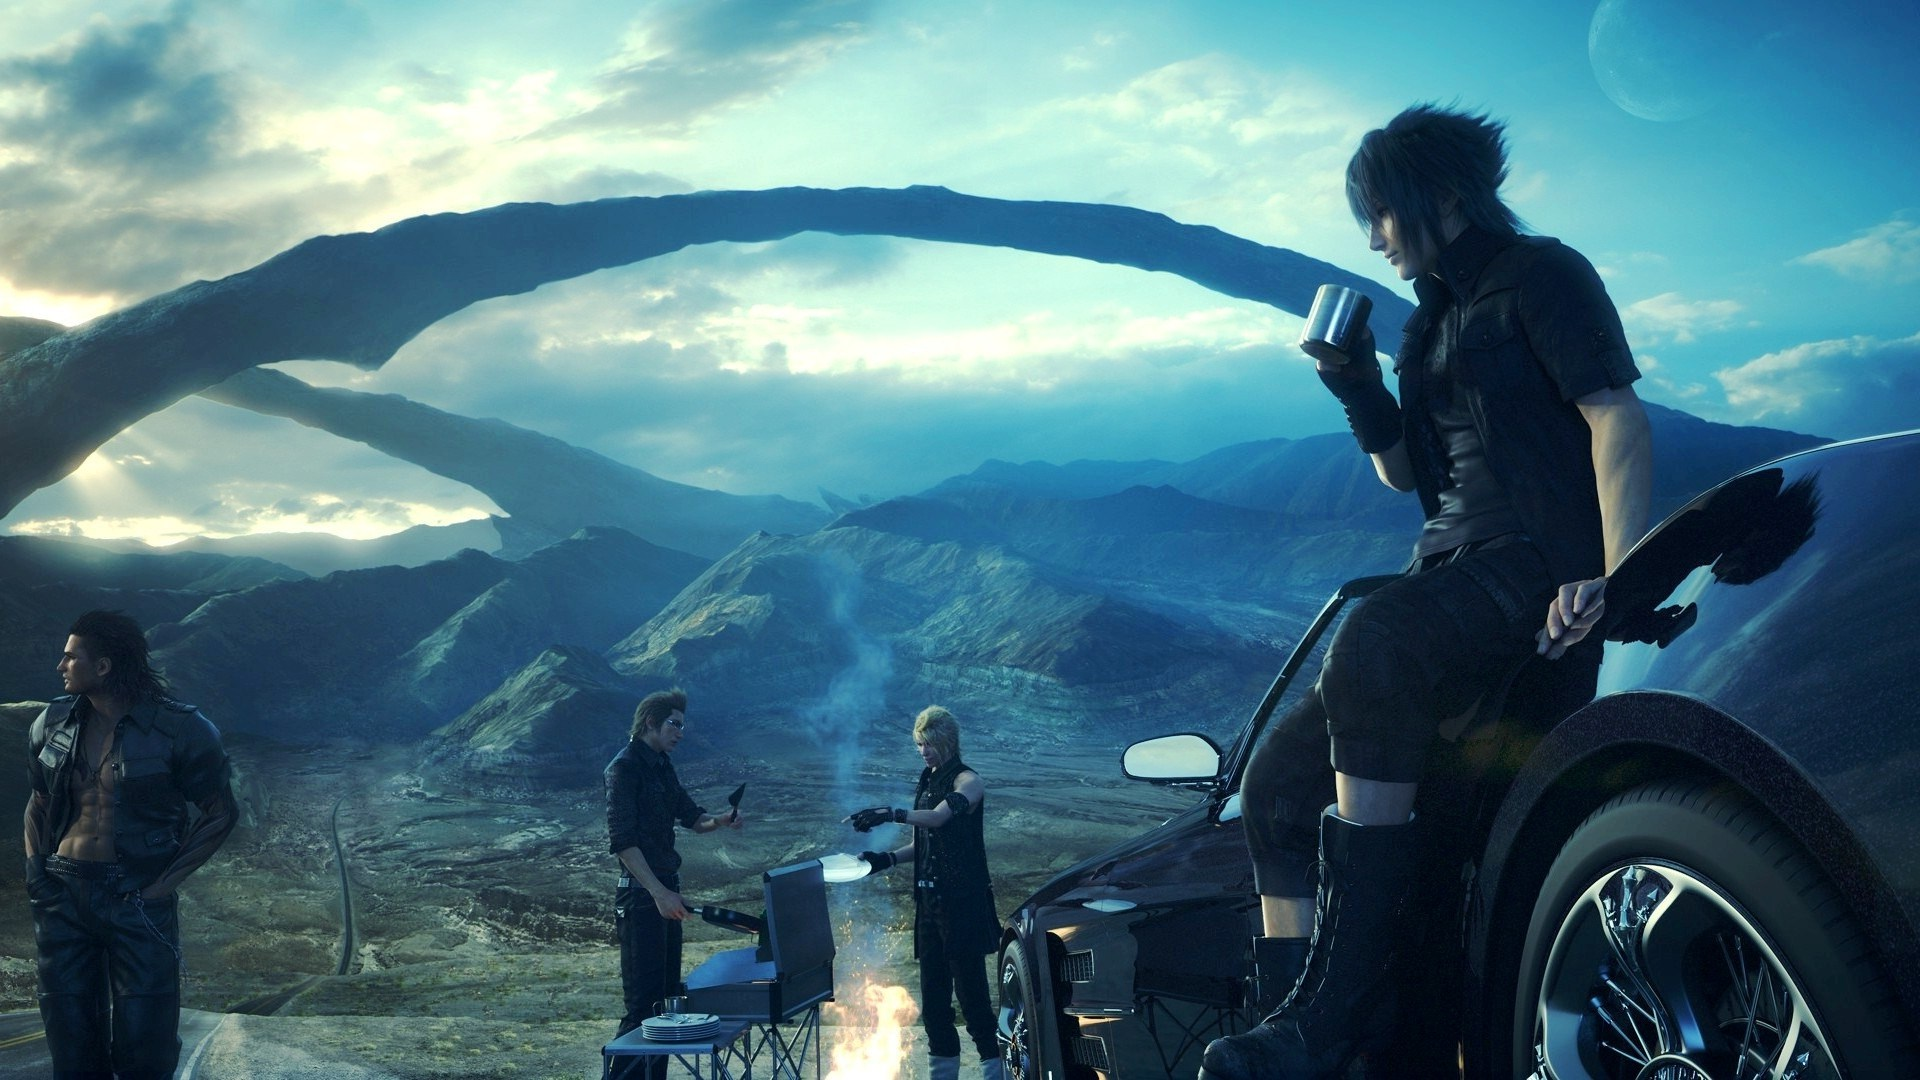 """Final Fantasy XV"" Is Playable from Start to Finish - My We Have Come A Long Way"